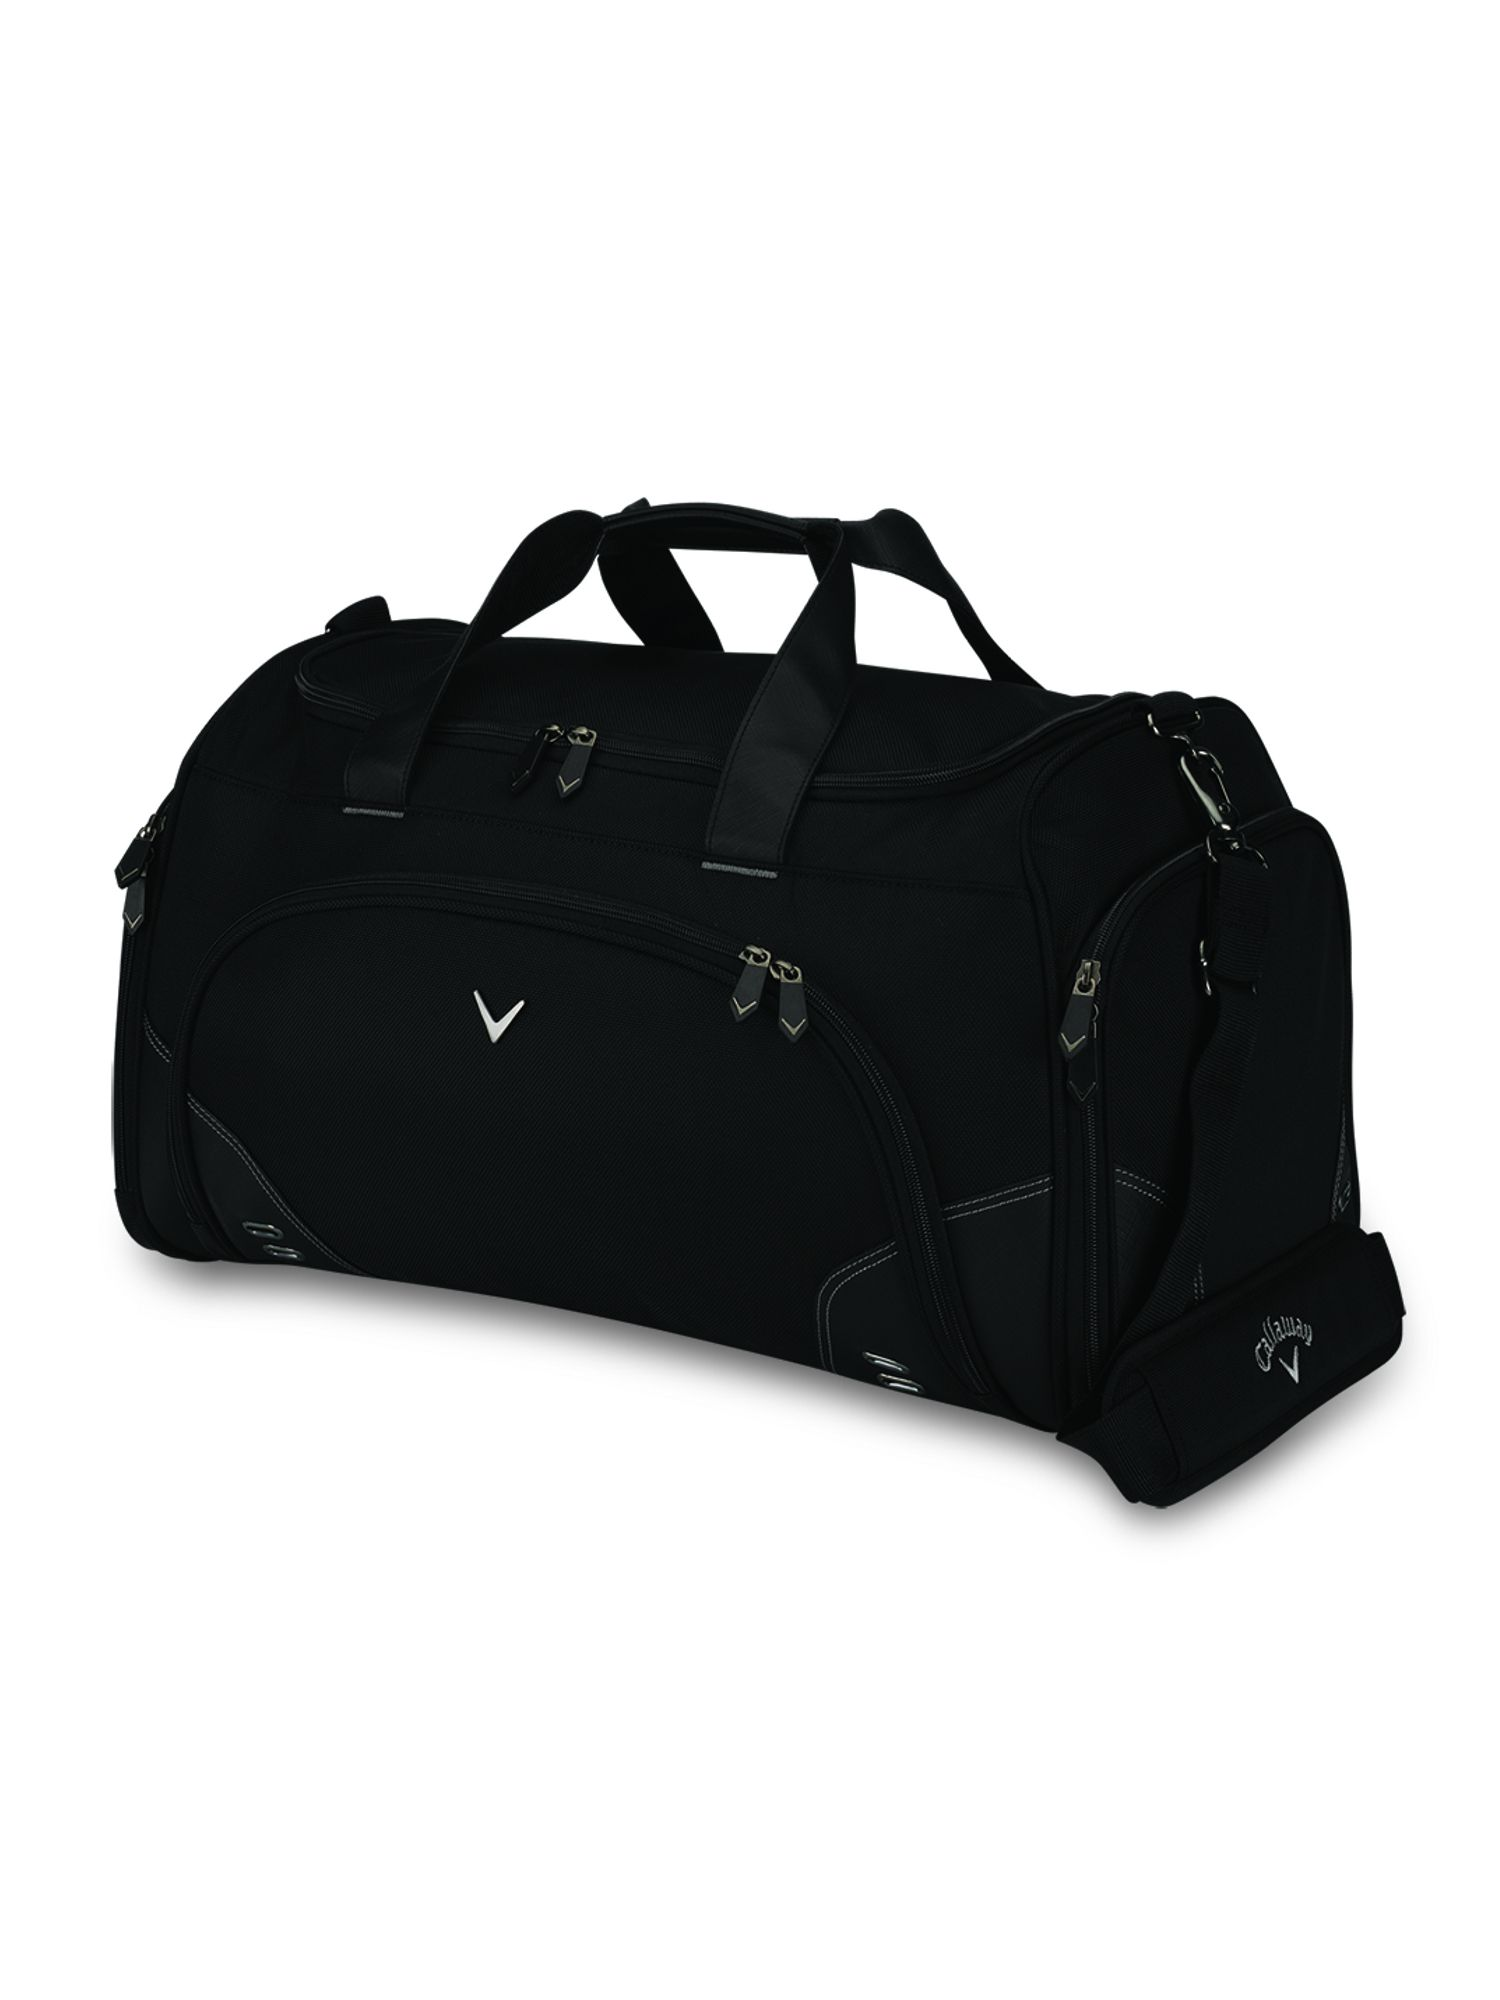 Chev medium duffel bag